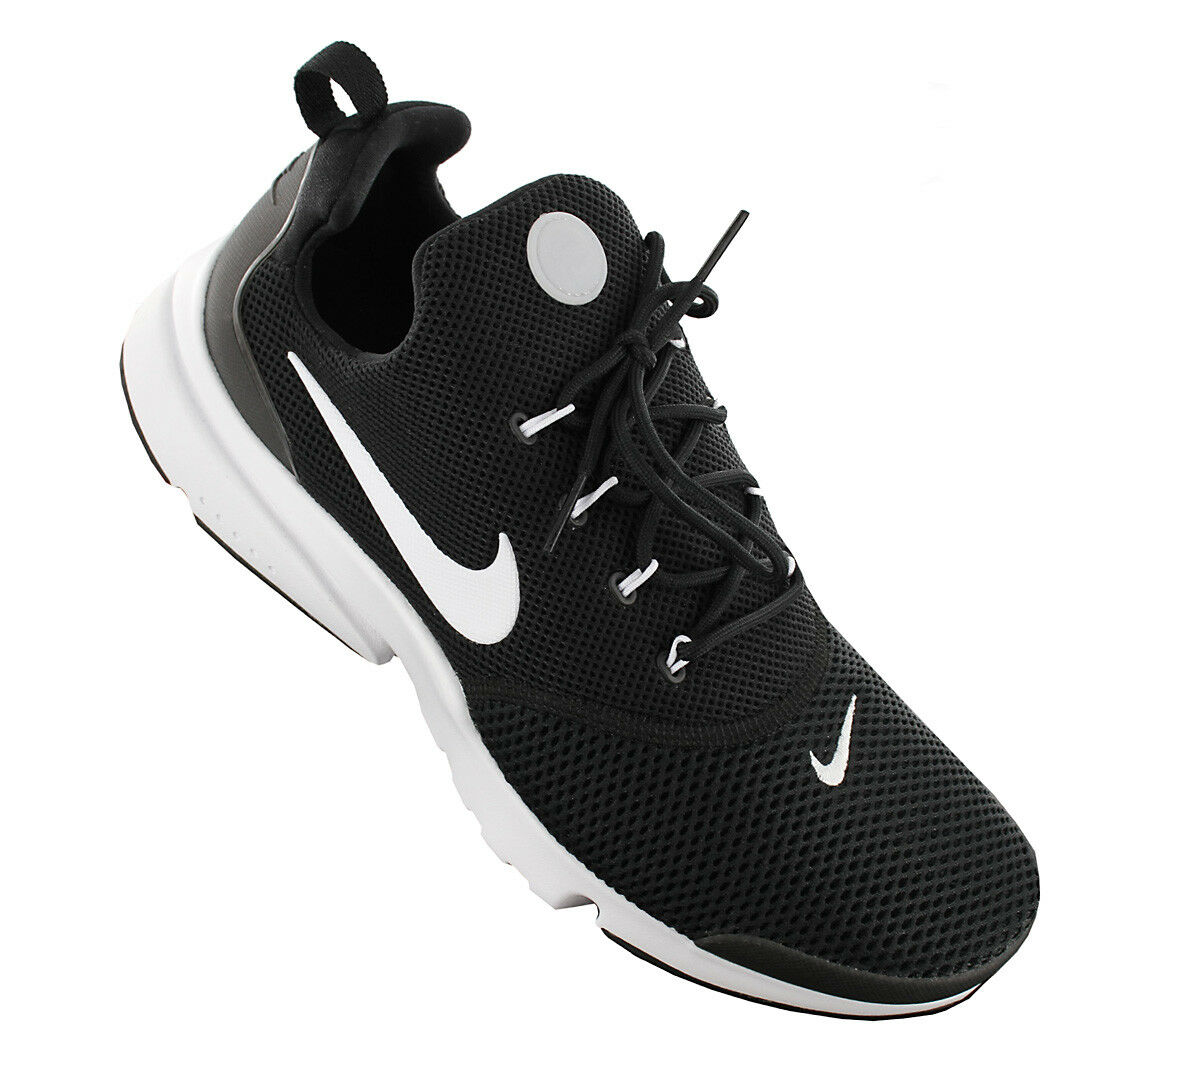 NEW Nike Presto Fly 908019-002 Men''s shoes Trainers Sneakers SALE